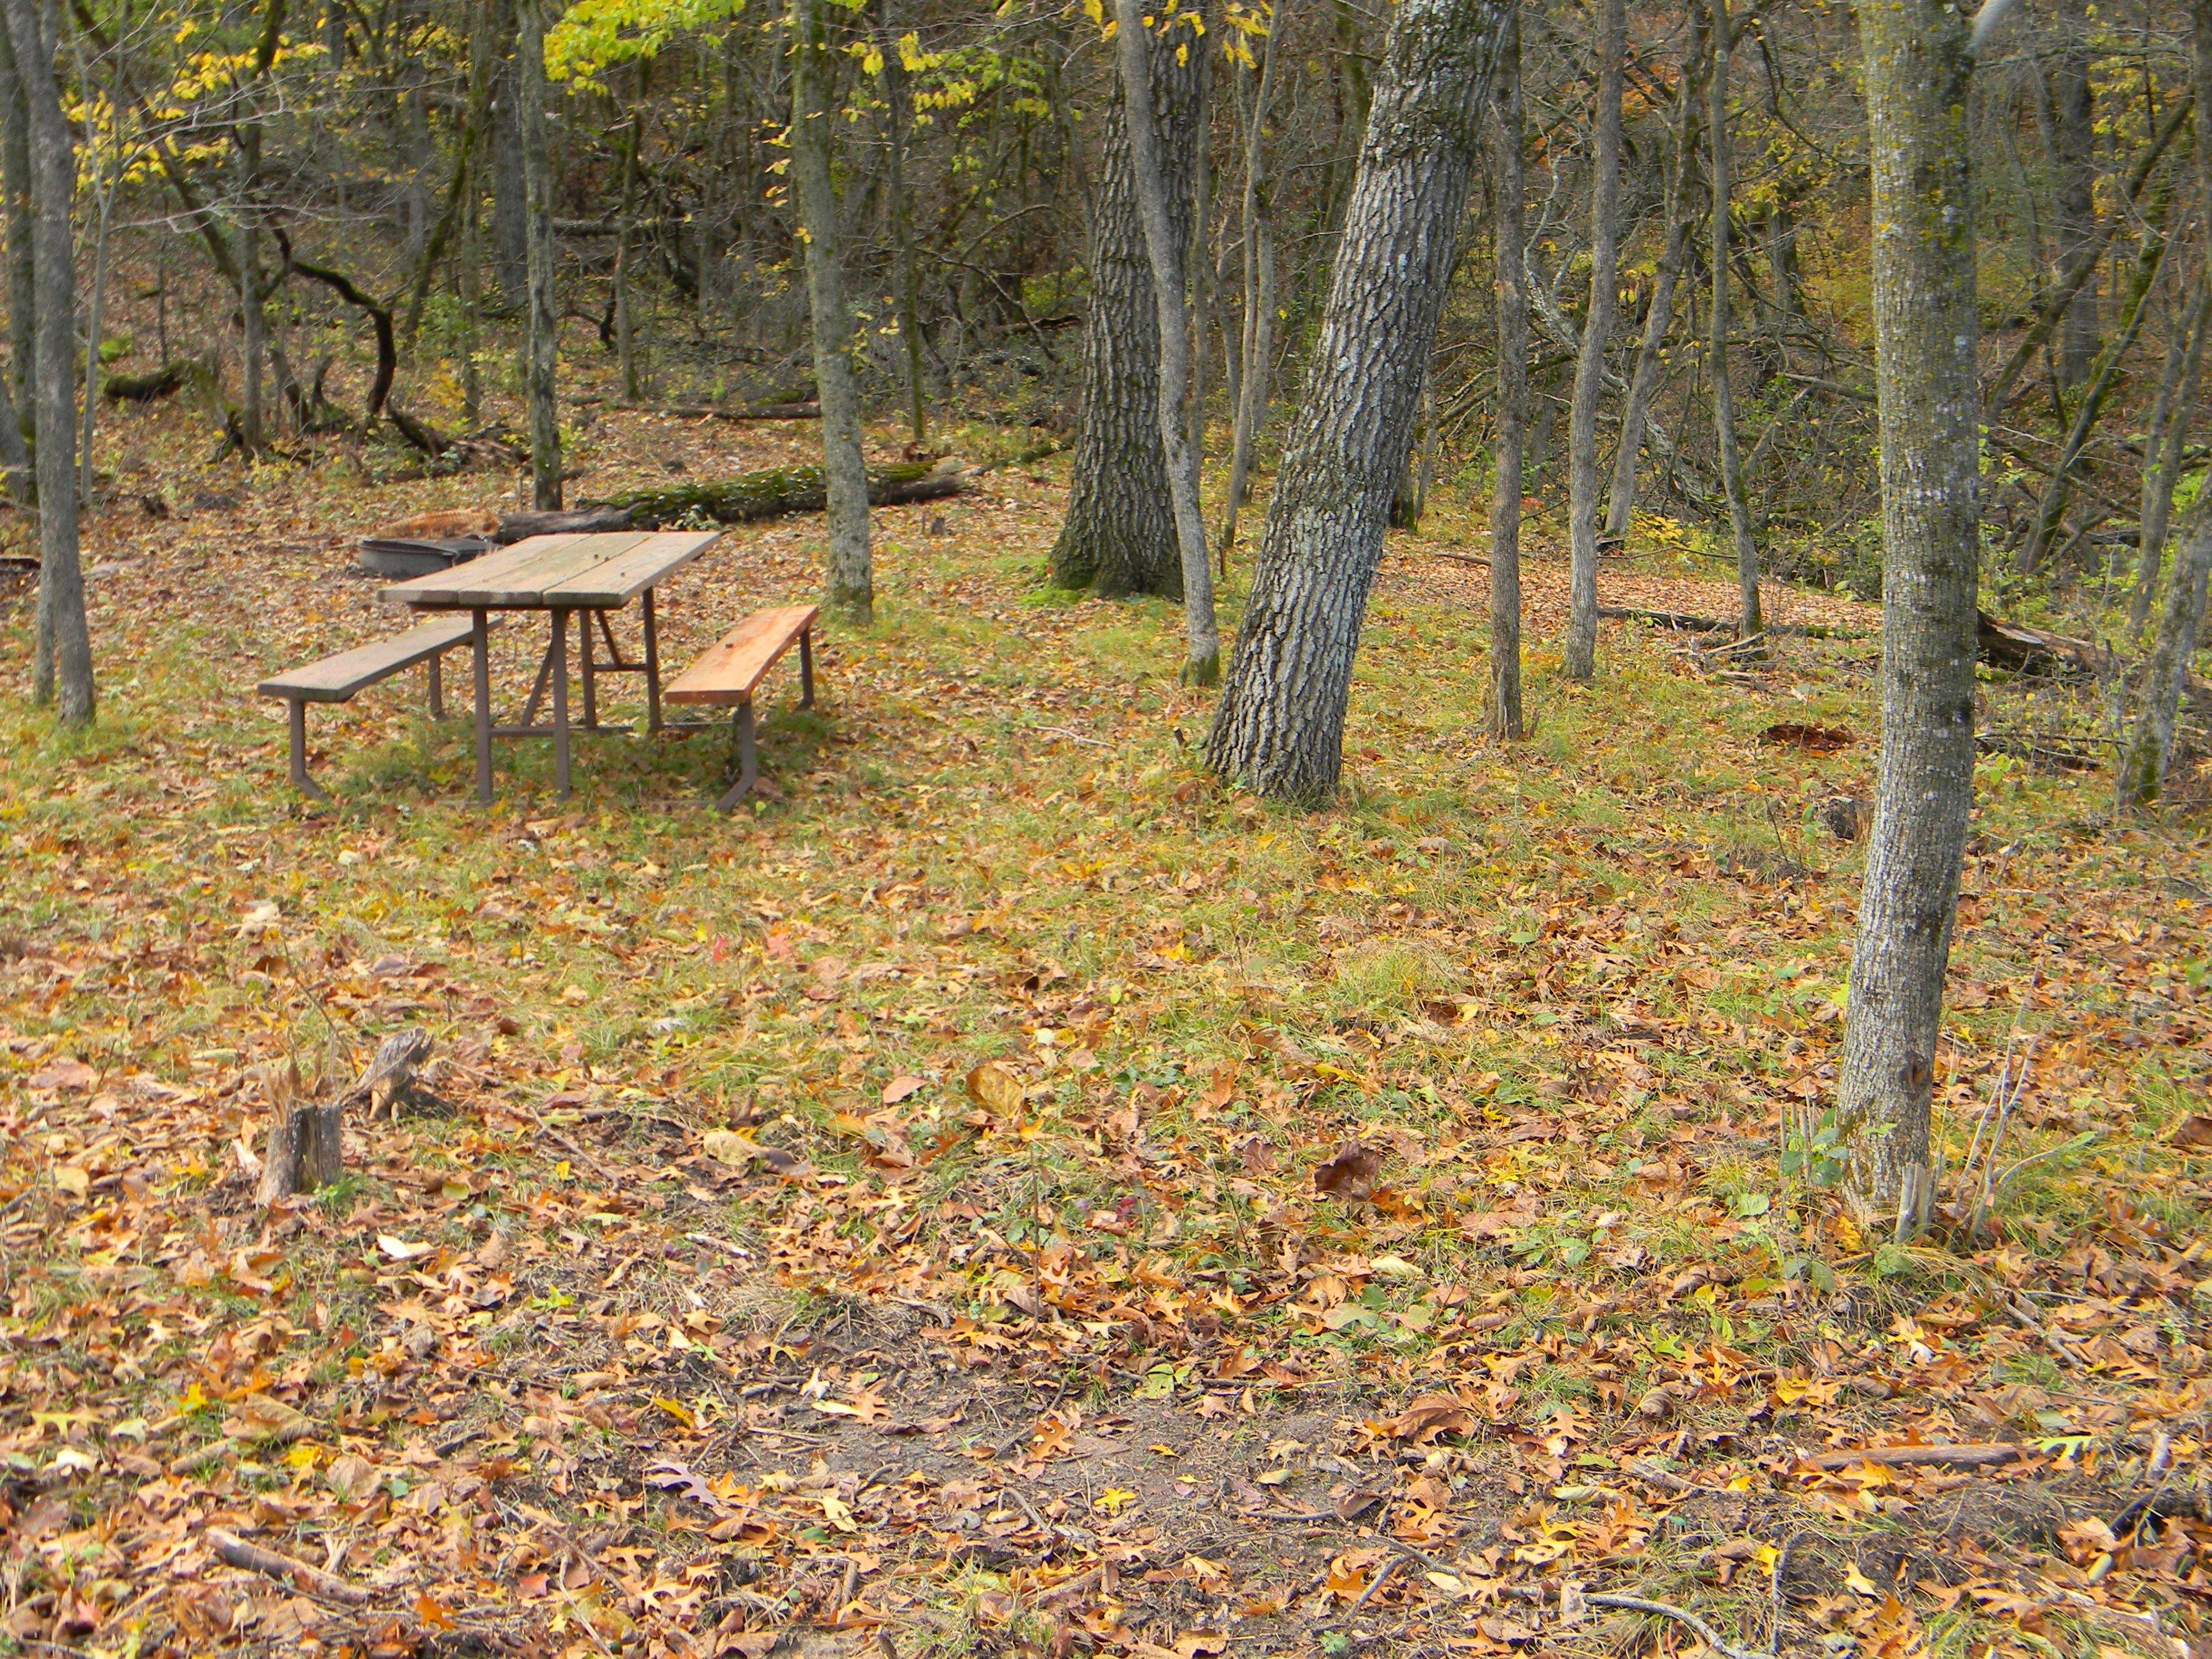 campsite with picnic table in fall